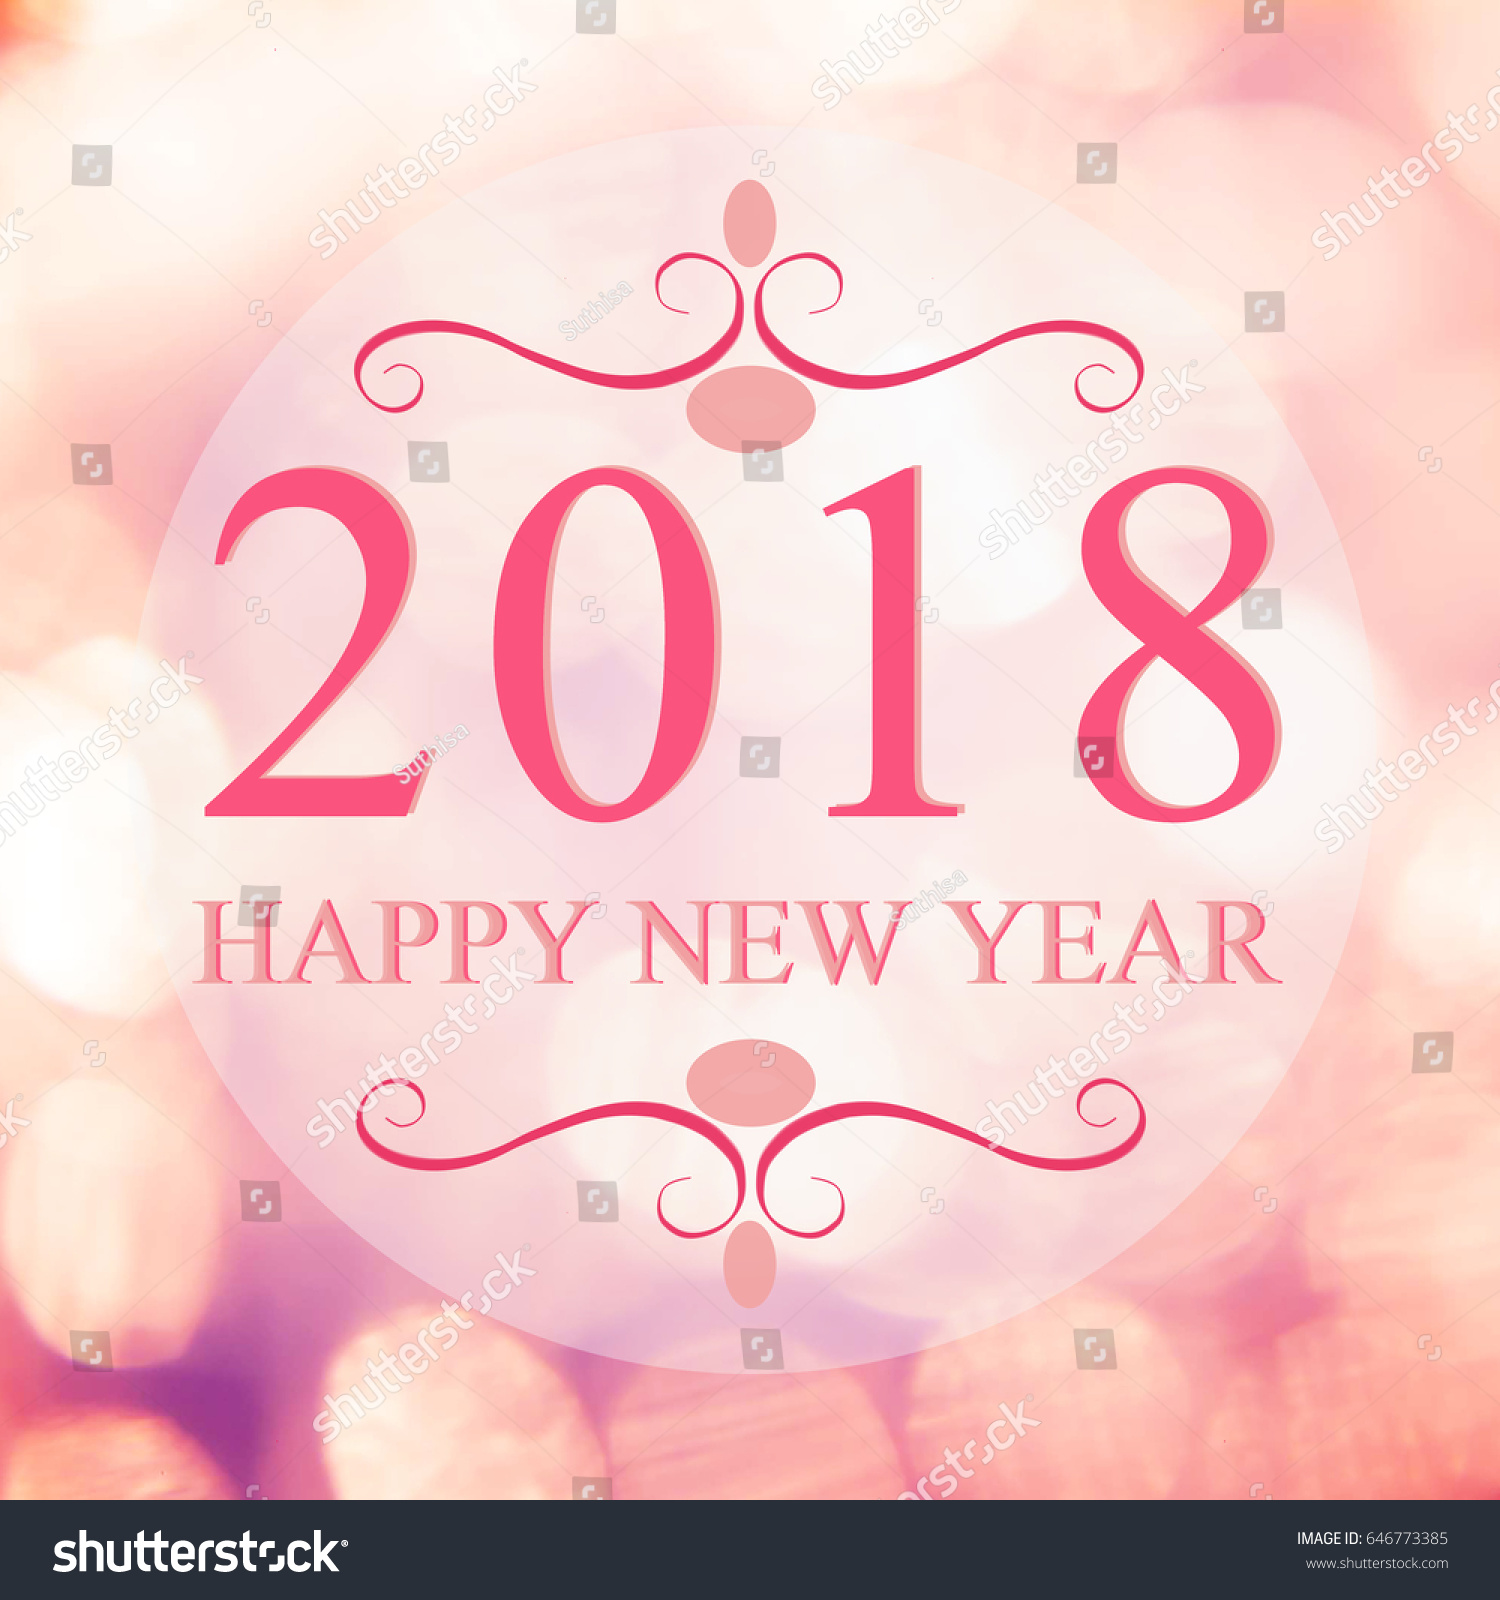 happy new year 2018 year on beautiful blur background shopping mall and bokeh pink tone